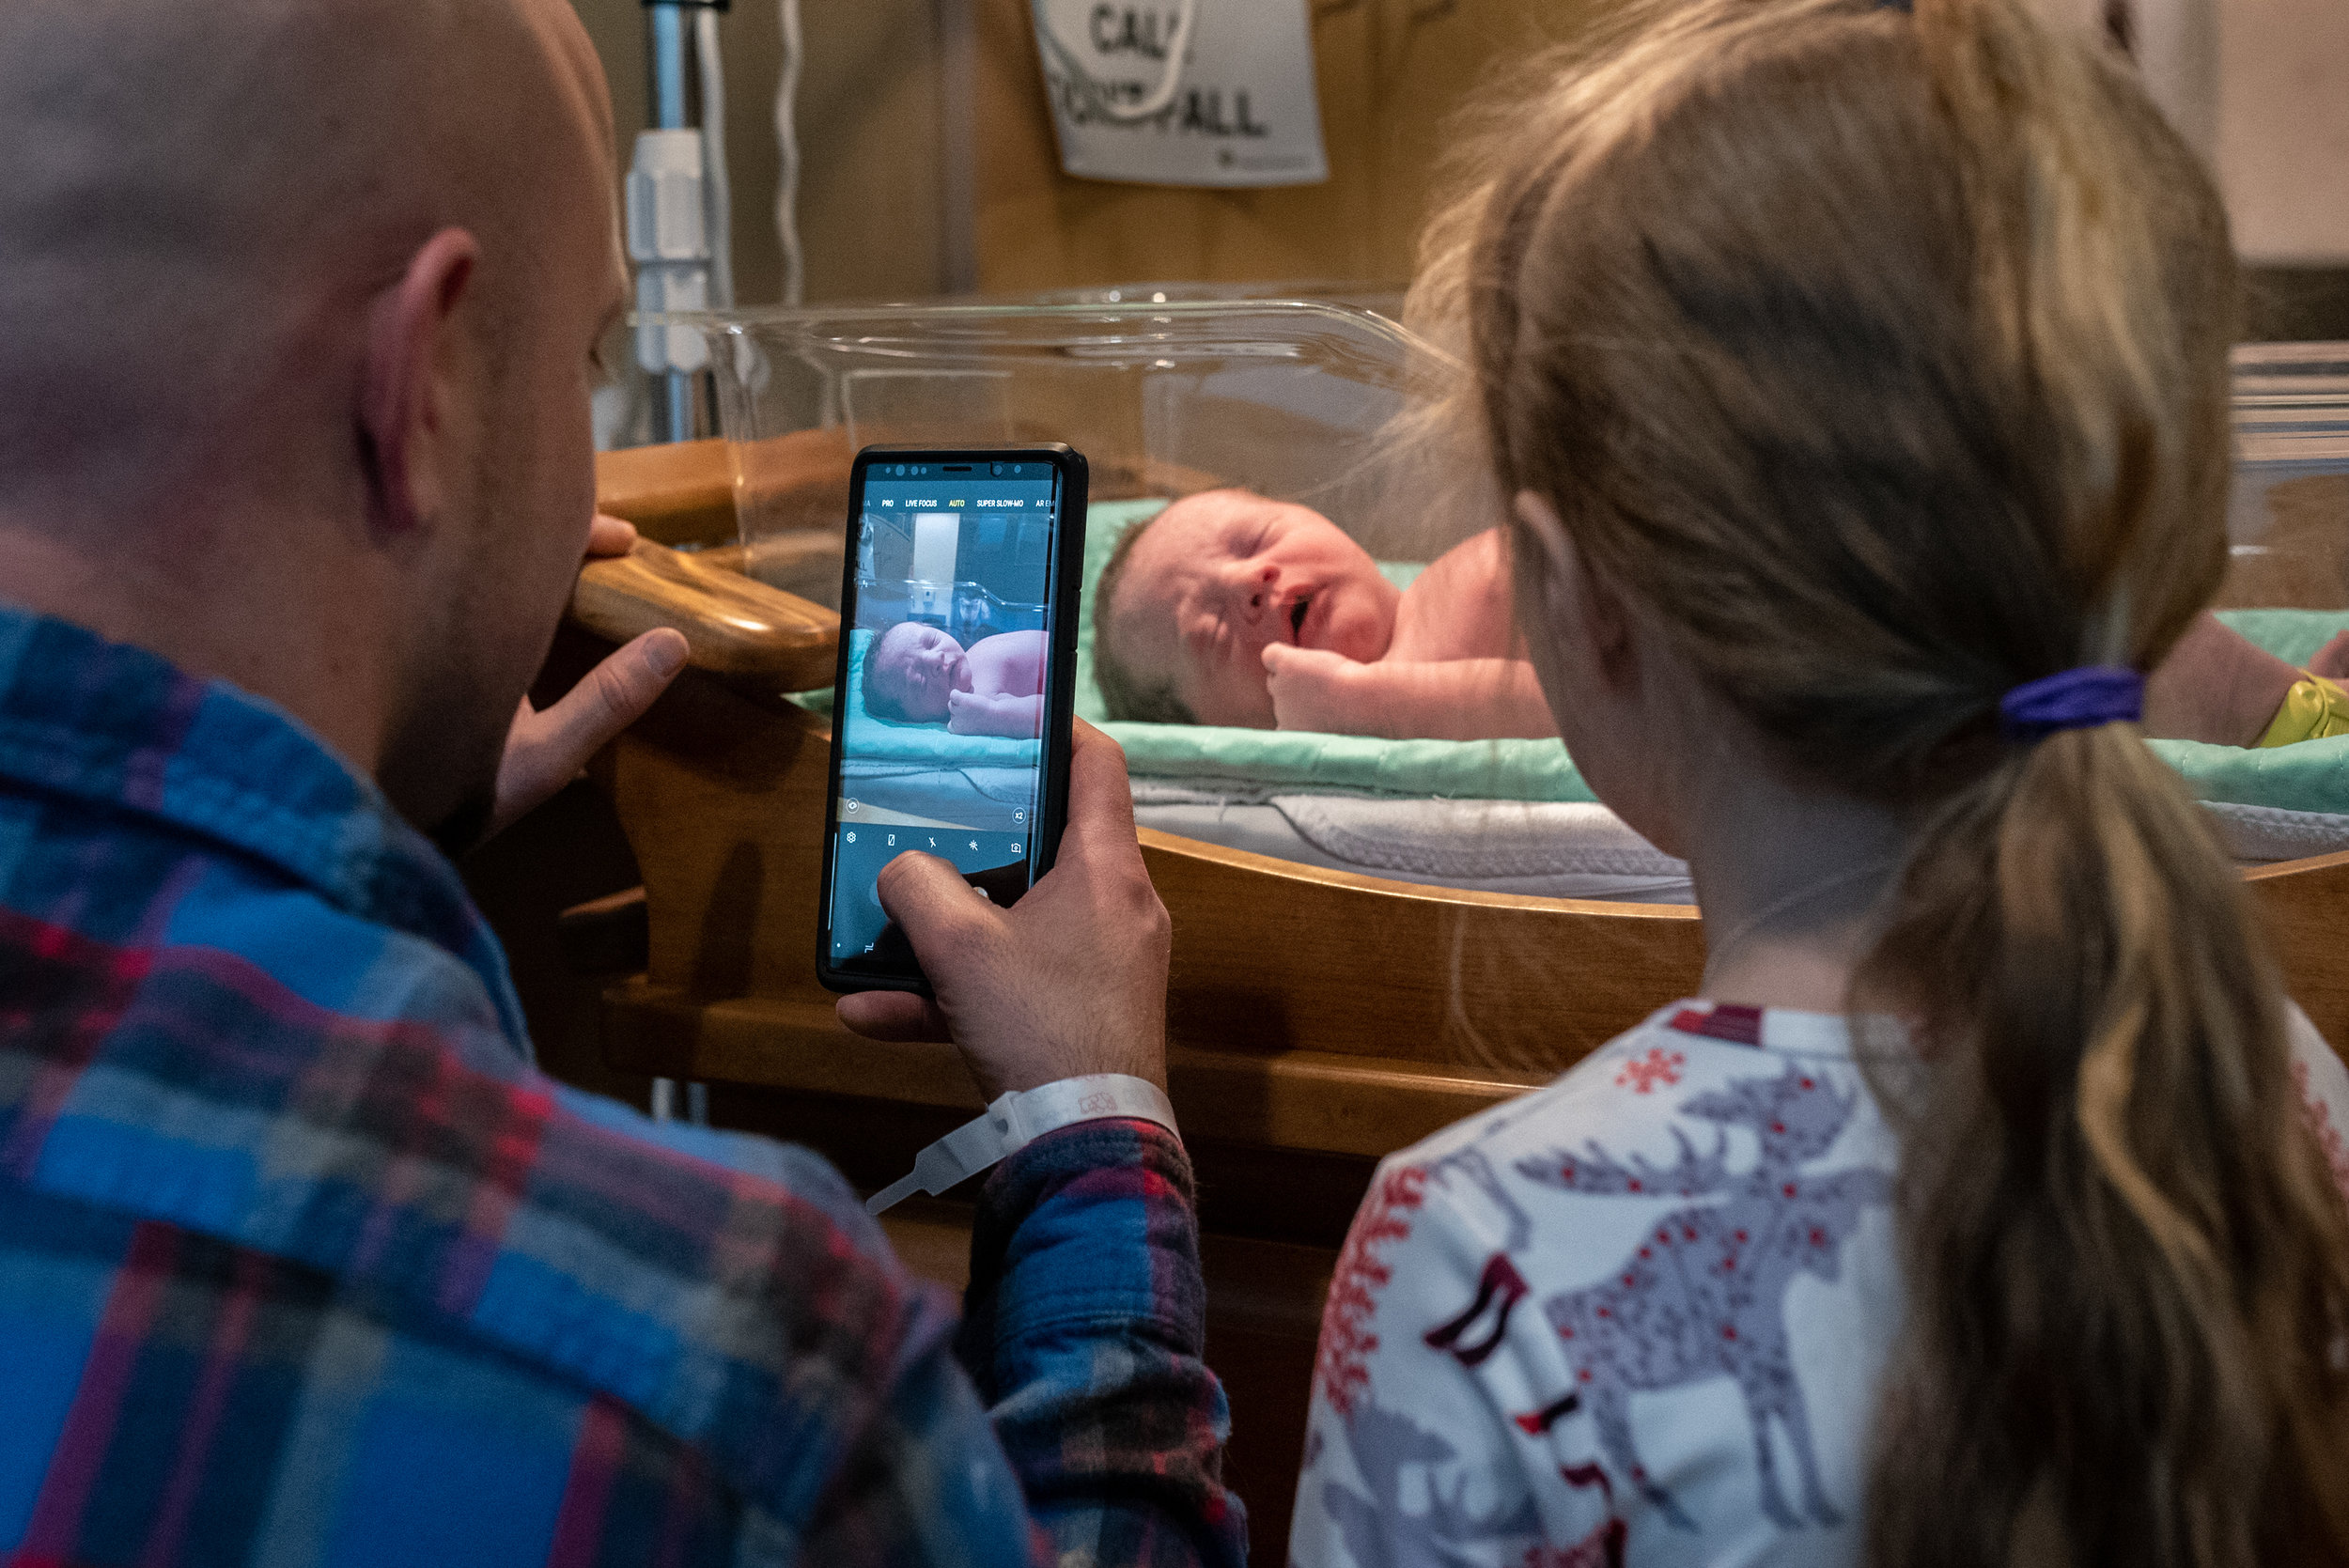 Dad and daughter taking a picture of newborn baby in the hospital.